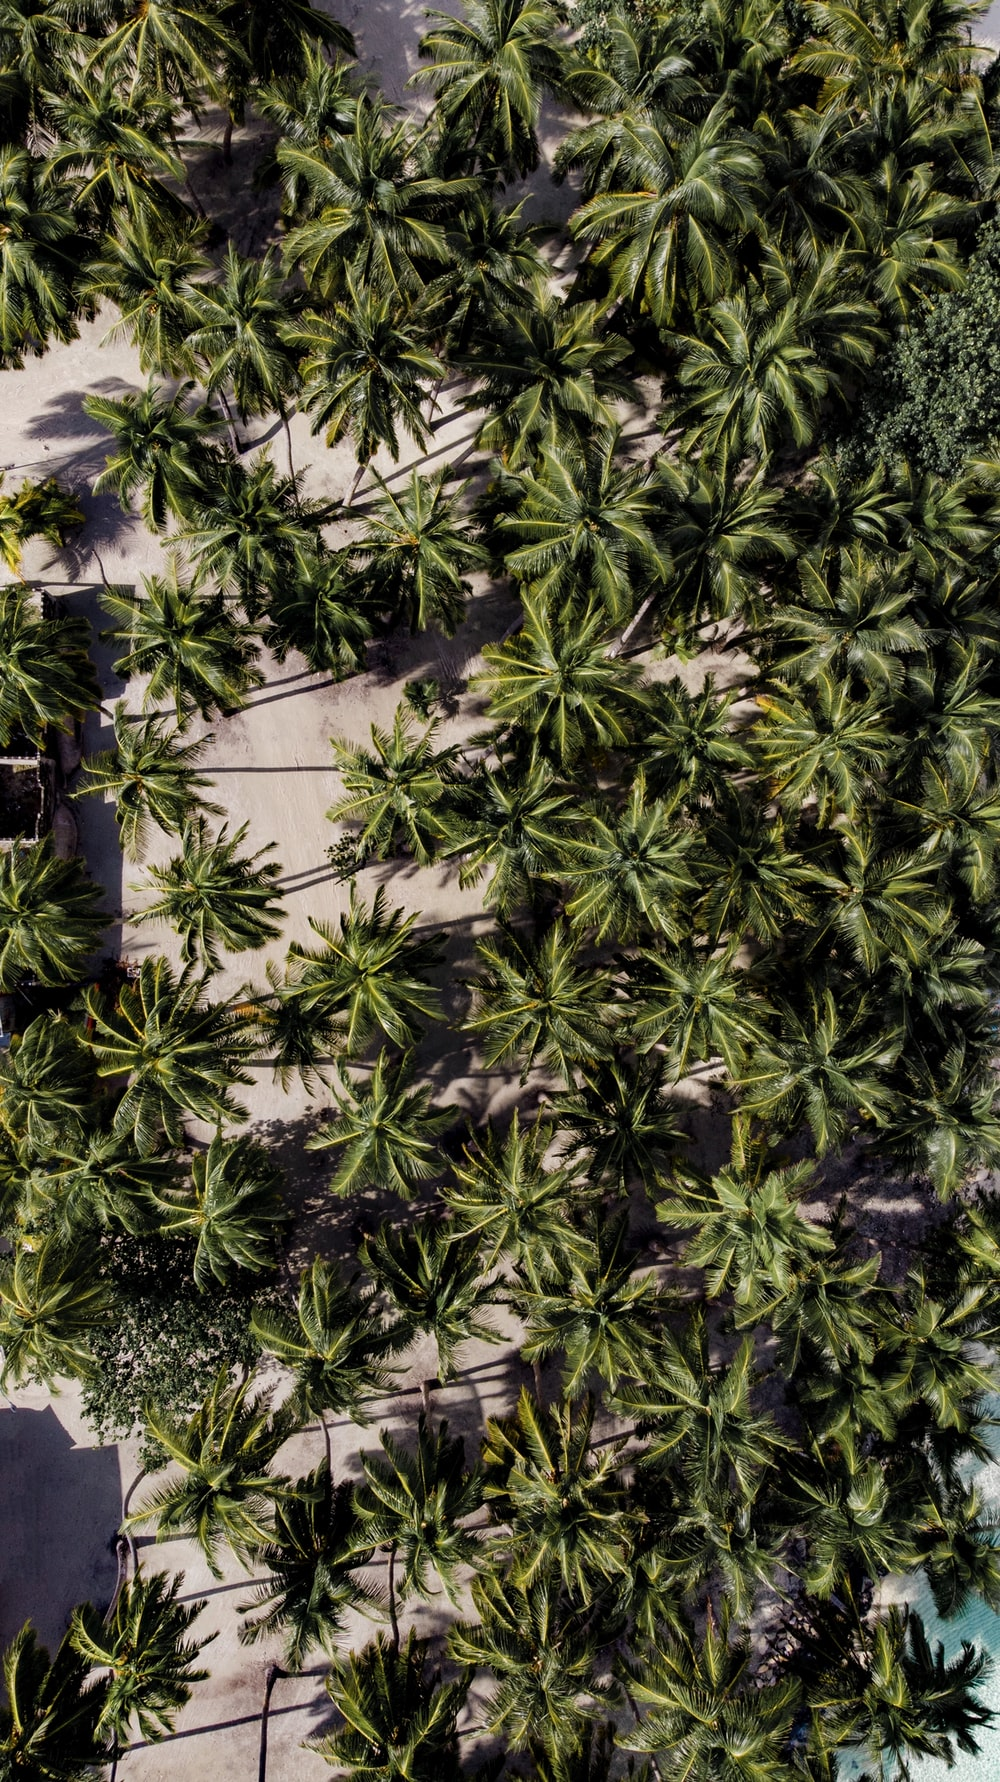 aerial view of palm tree